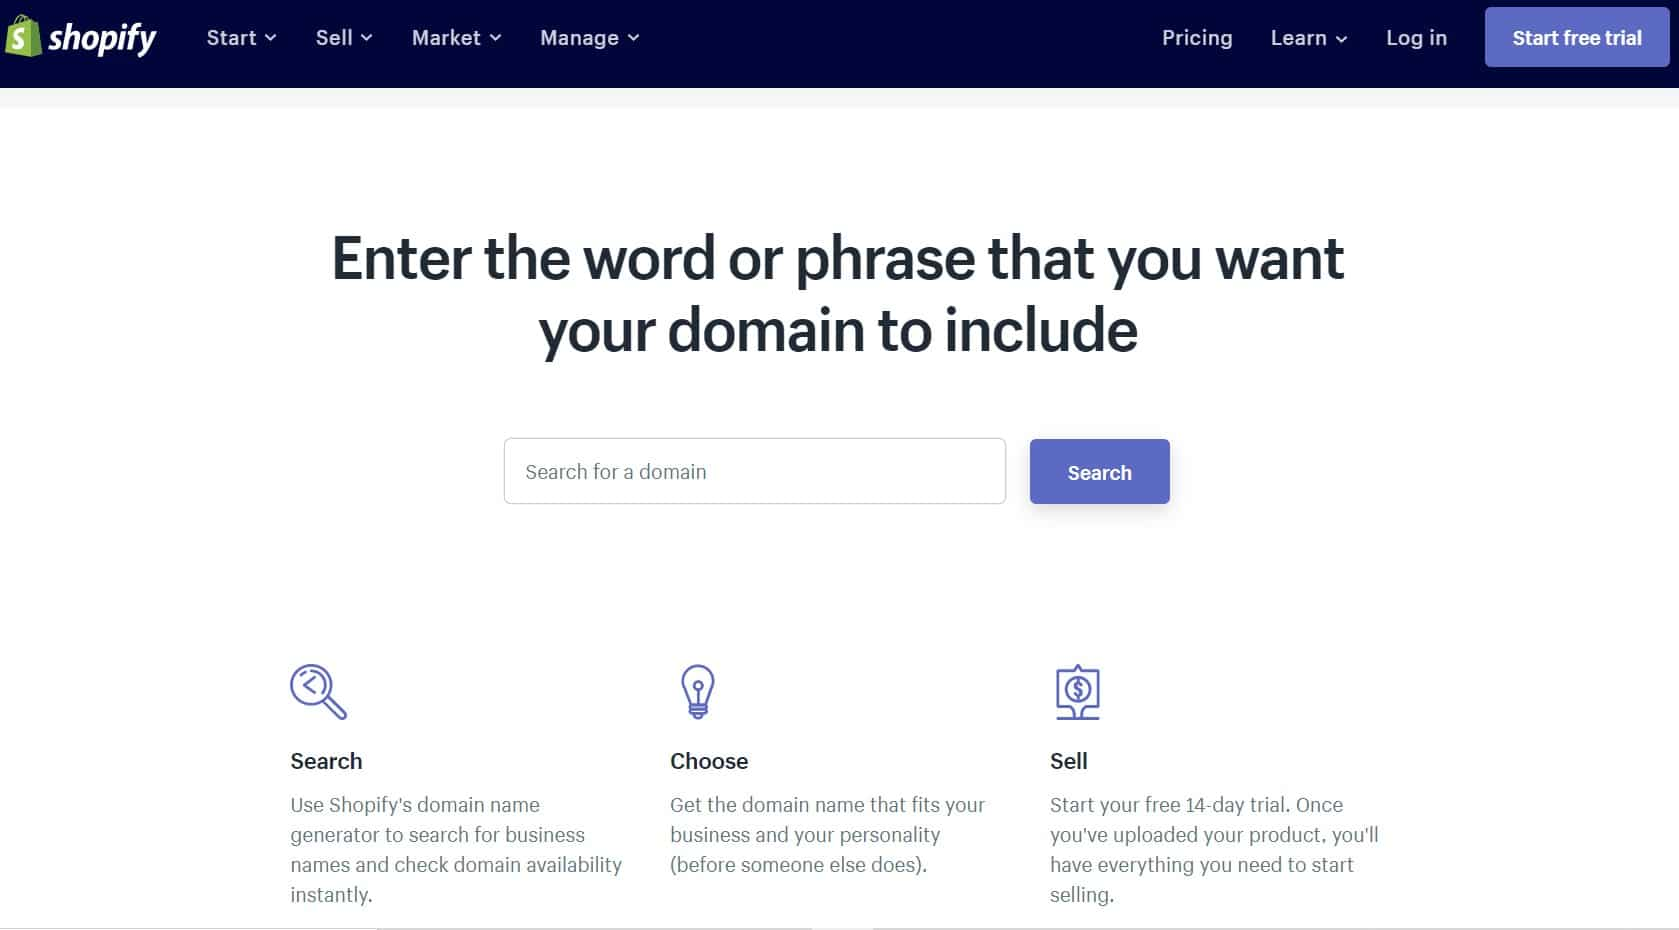 Shopify: The powerful & brandable domain generator tool